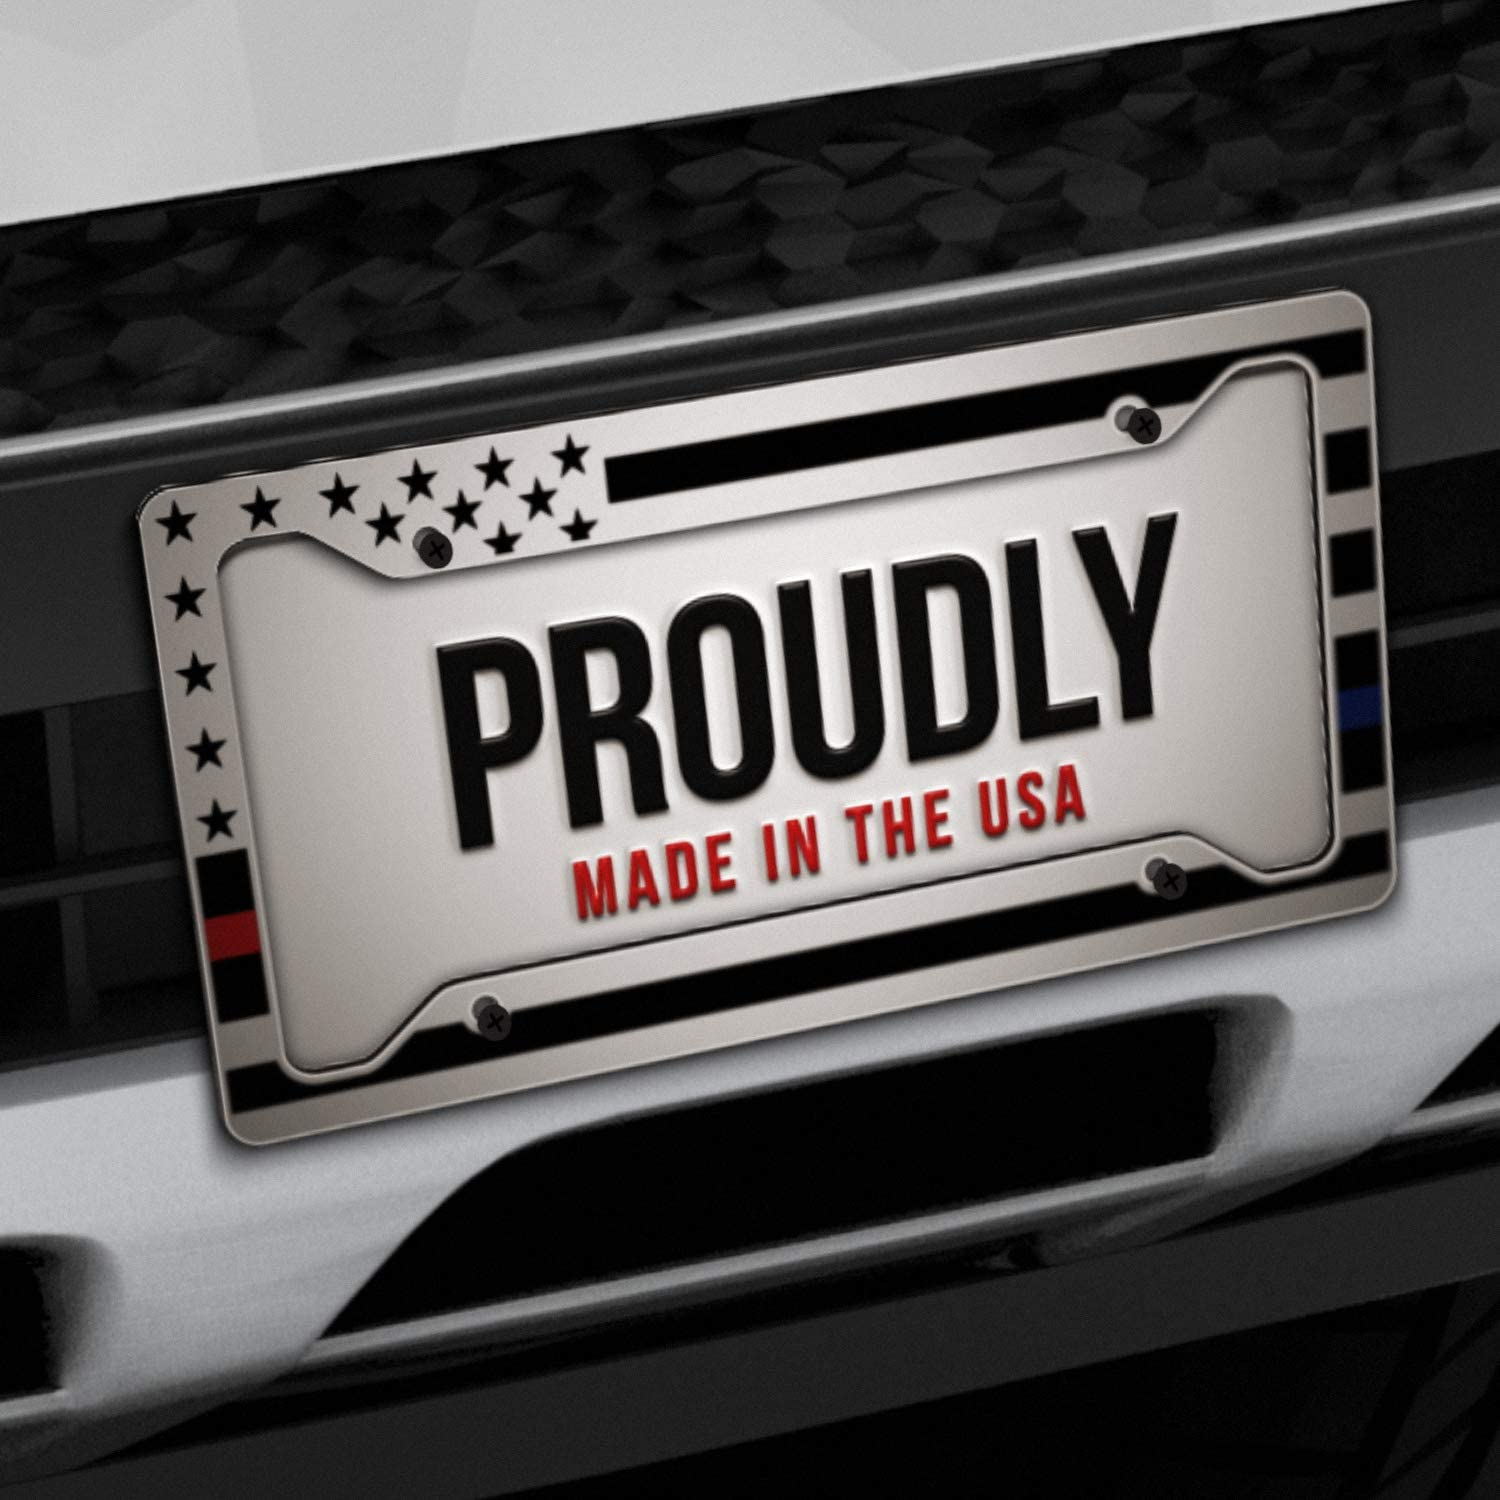 Alumina Car Licence Plate Decor Covers with 4 Holes DZGlobal Police/&Firefighter/&EMT Flag License Plate Frames